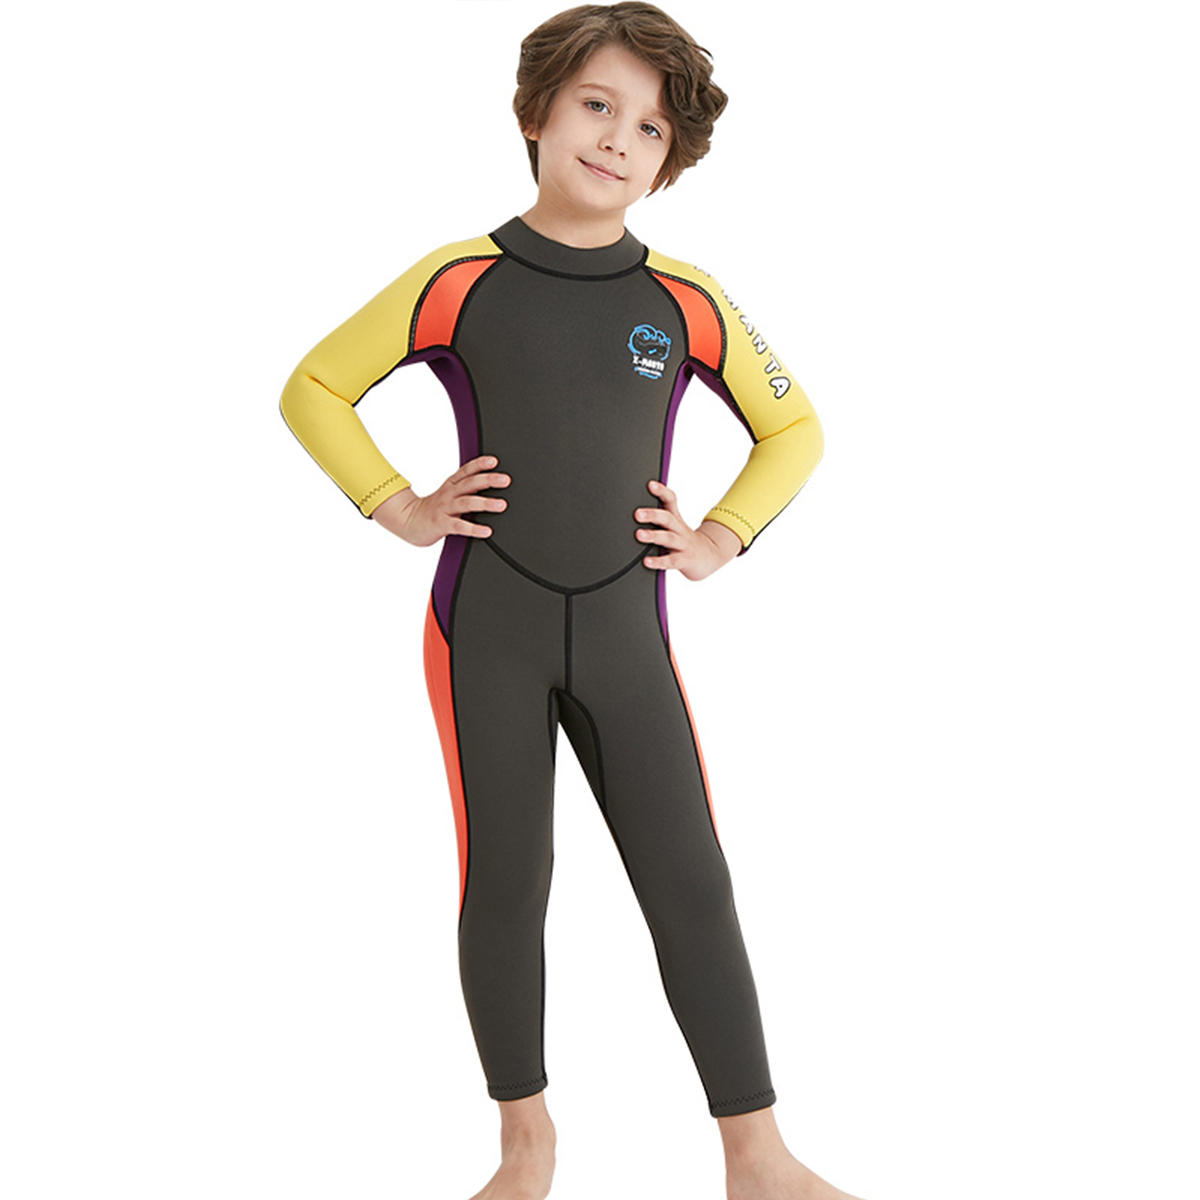 Kids Boy Scuba One-piece Diving Suit UV Protection Thermal Snorkeling Wetsuit Surfing Swimwear - 10